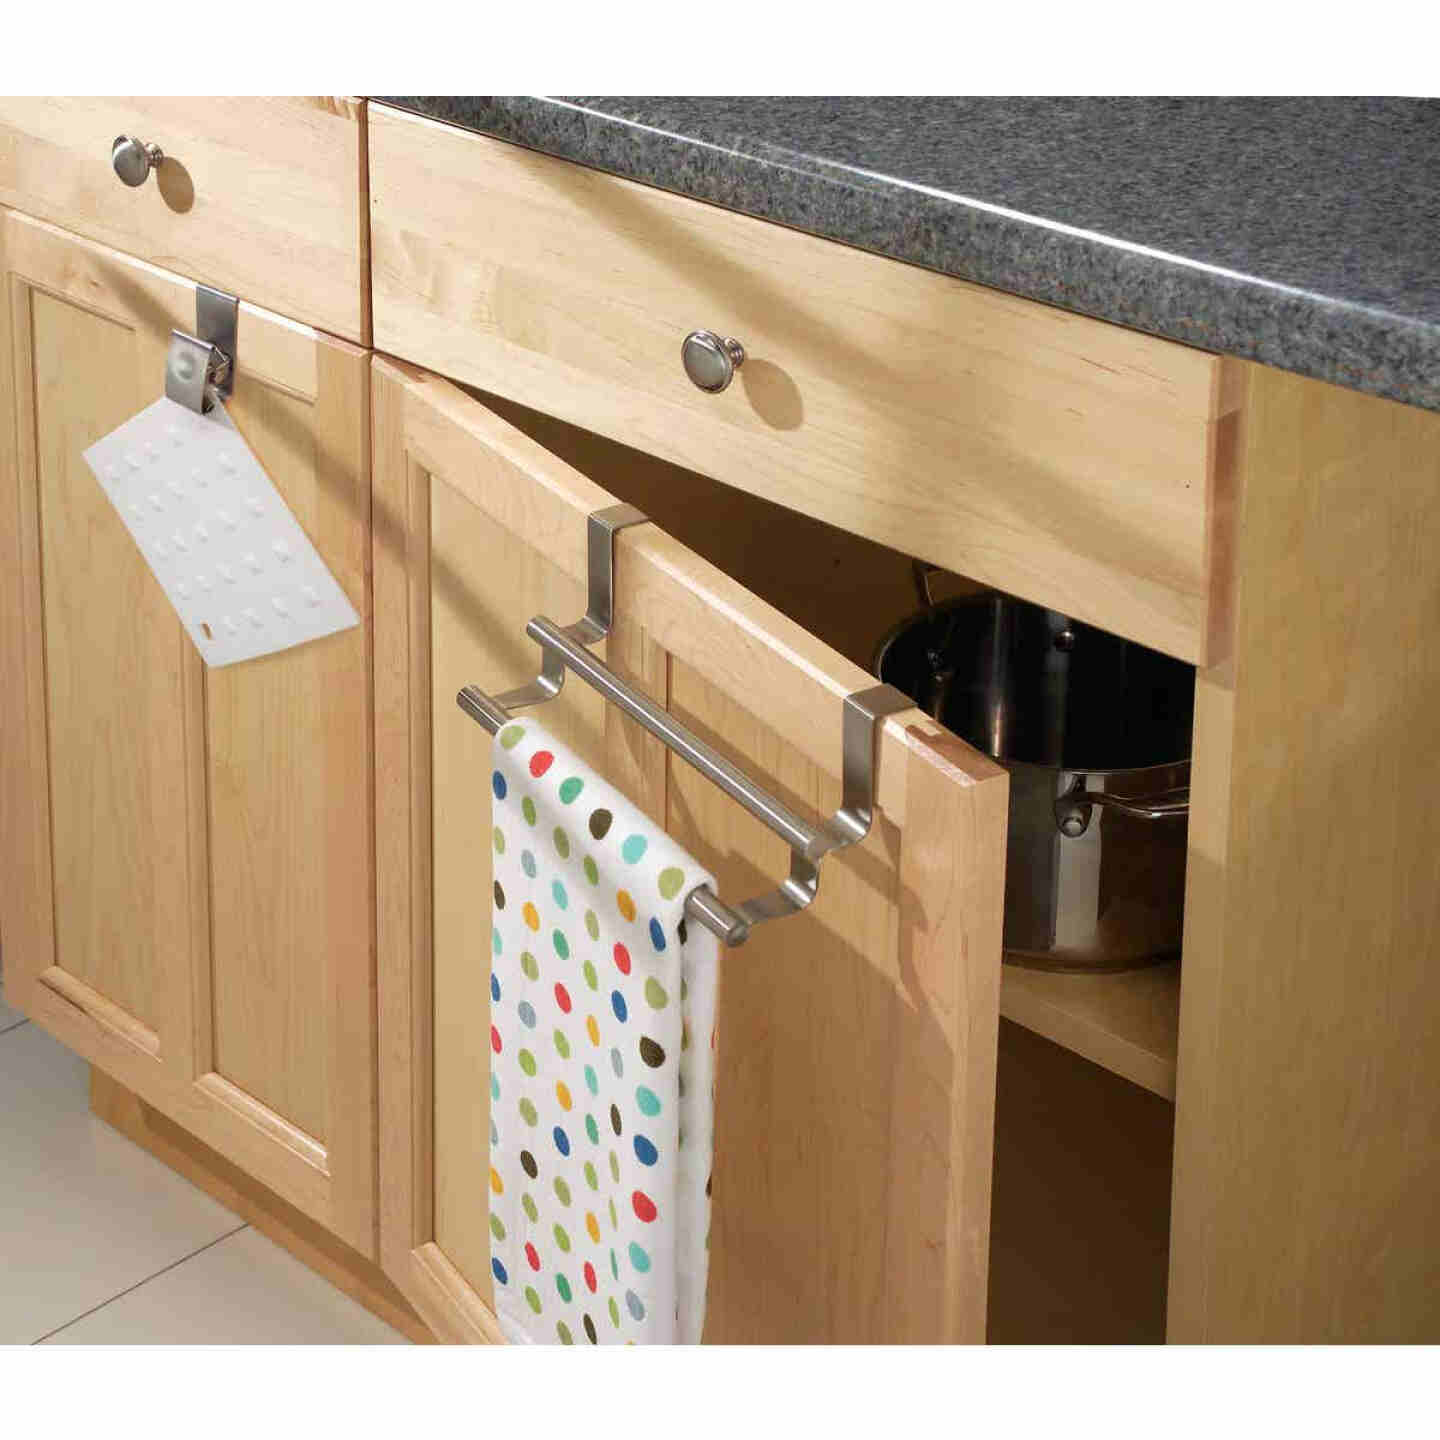 InterDesign Zia 9-1/4 in. Brushed Stainless Steel Over The Cabinet Double Towel Bar Image 2